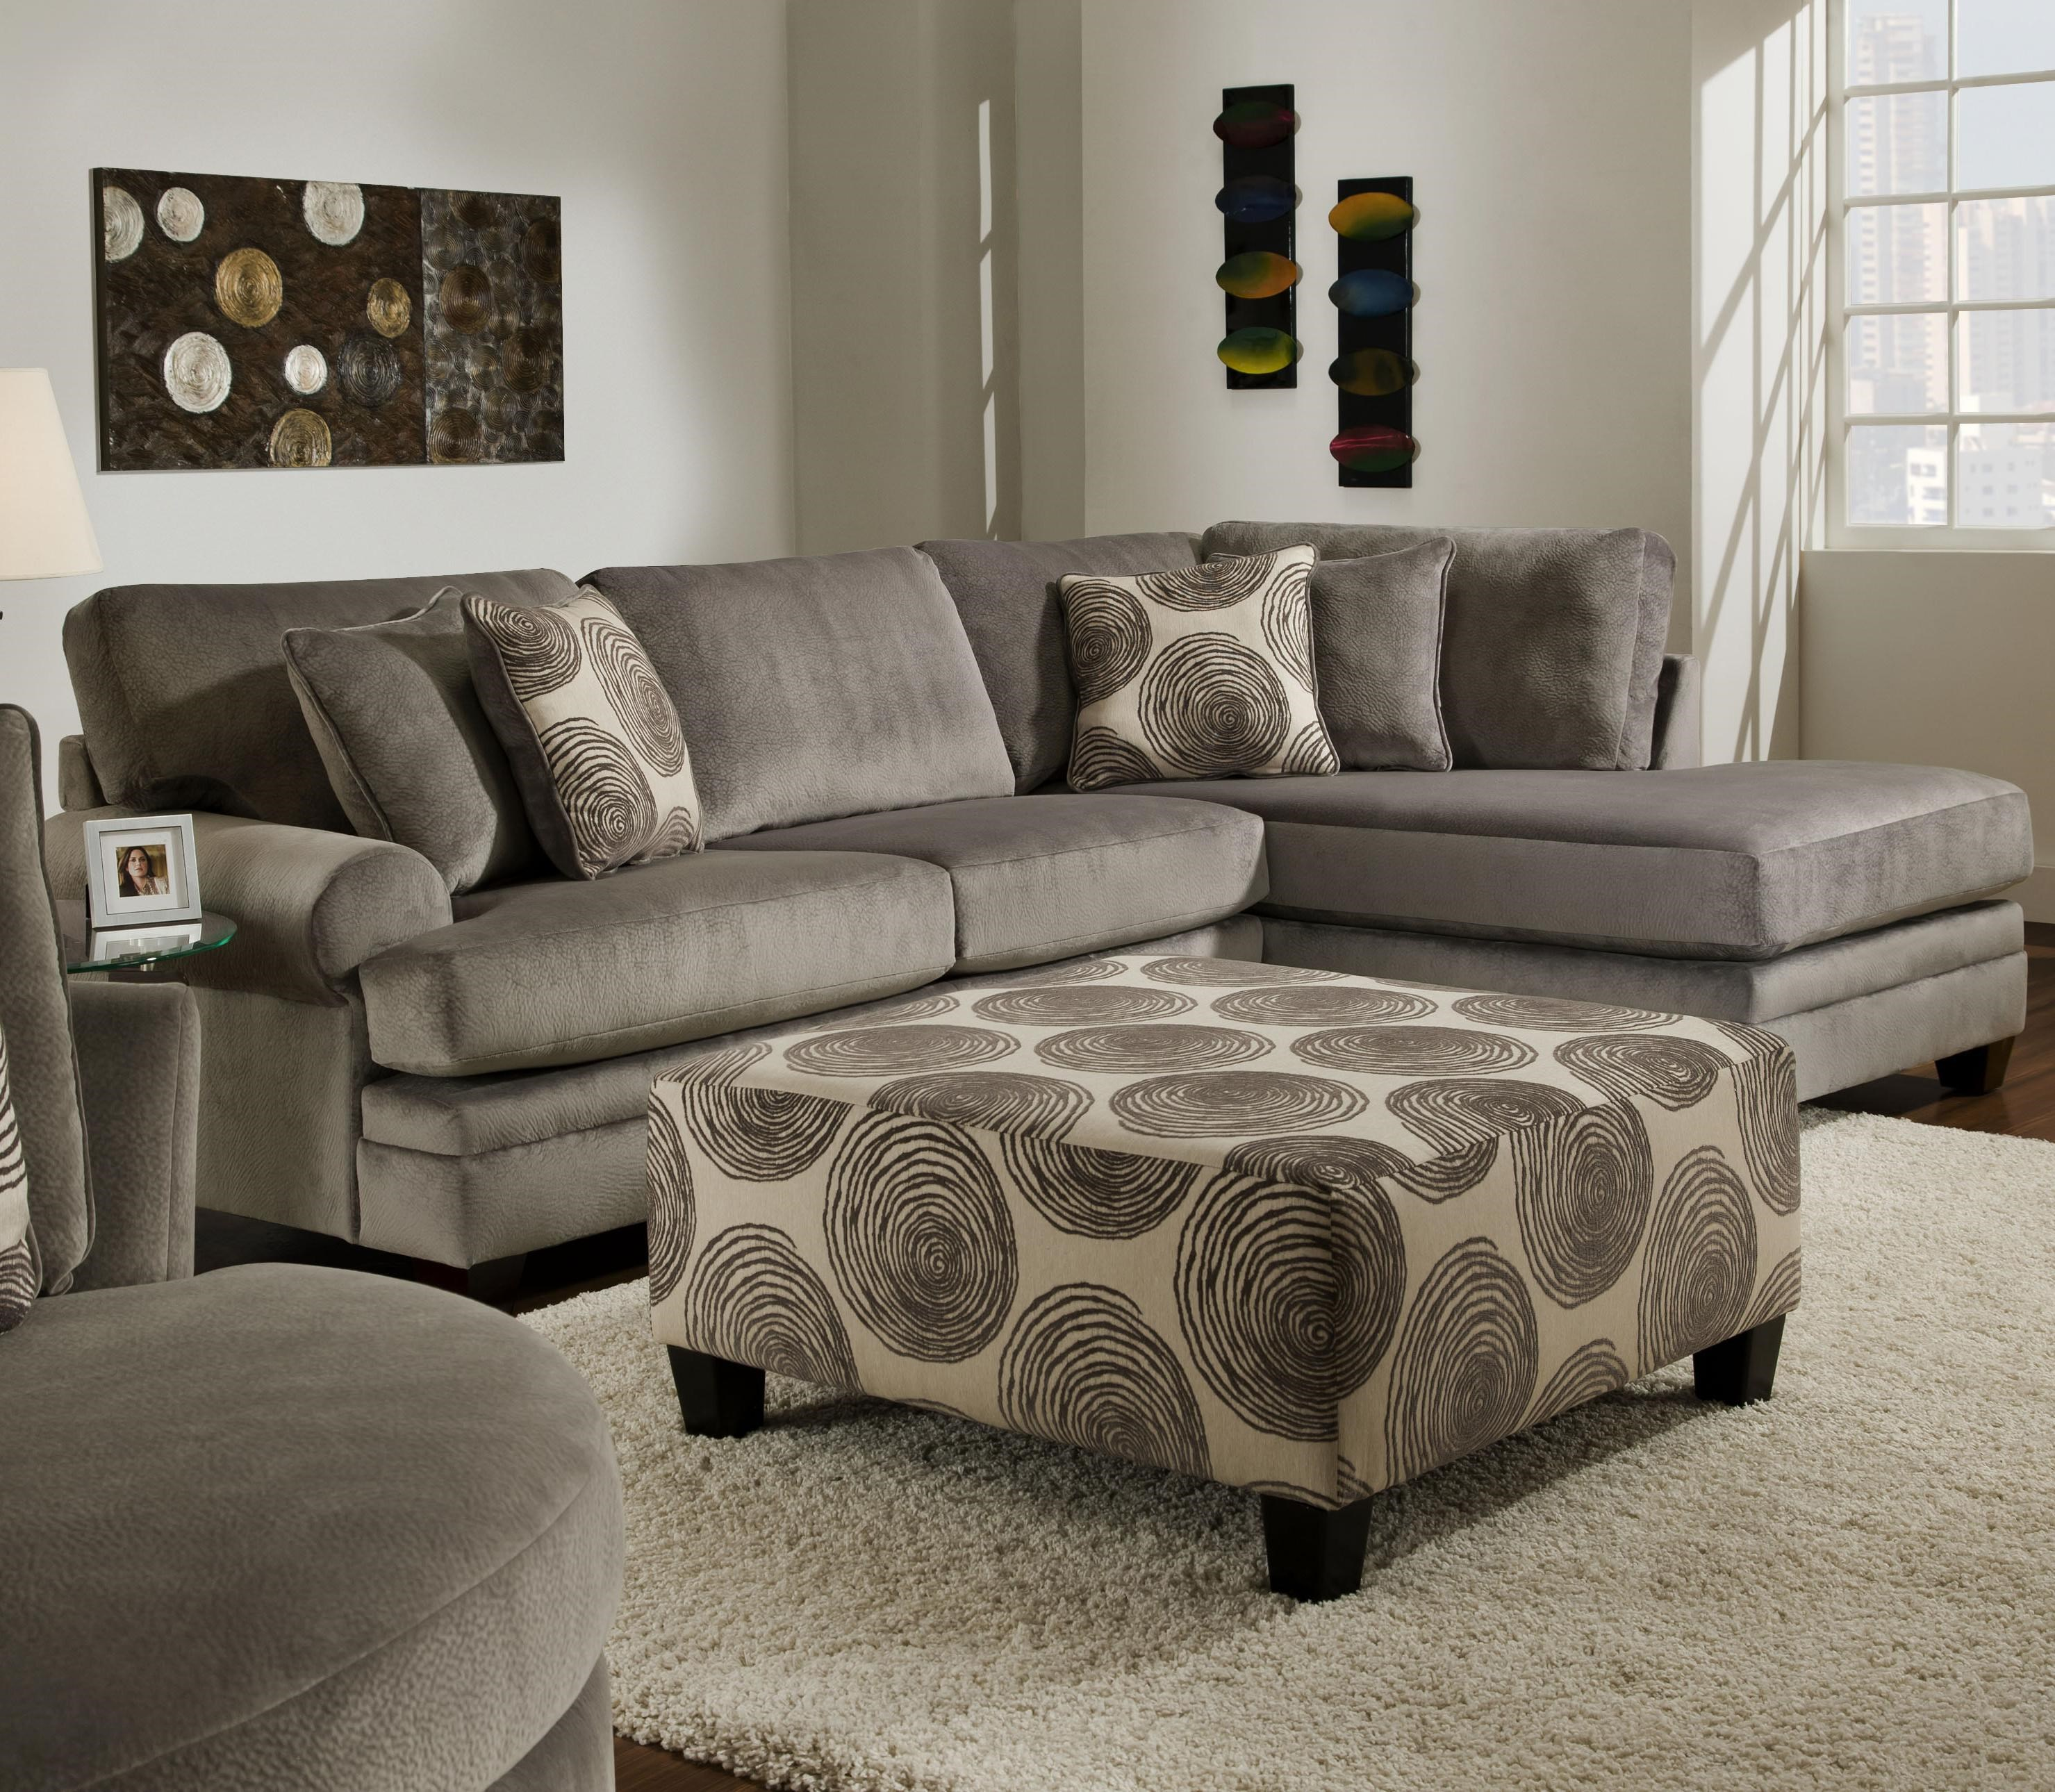 Attirant Albany 8642 Transitional Sectional Sofa With Chaise